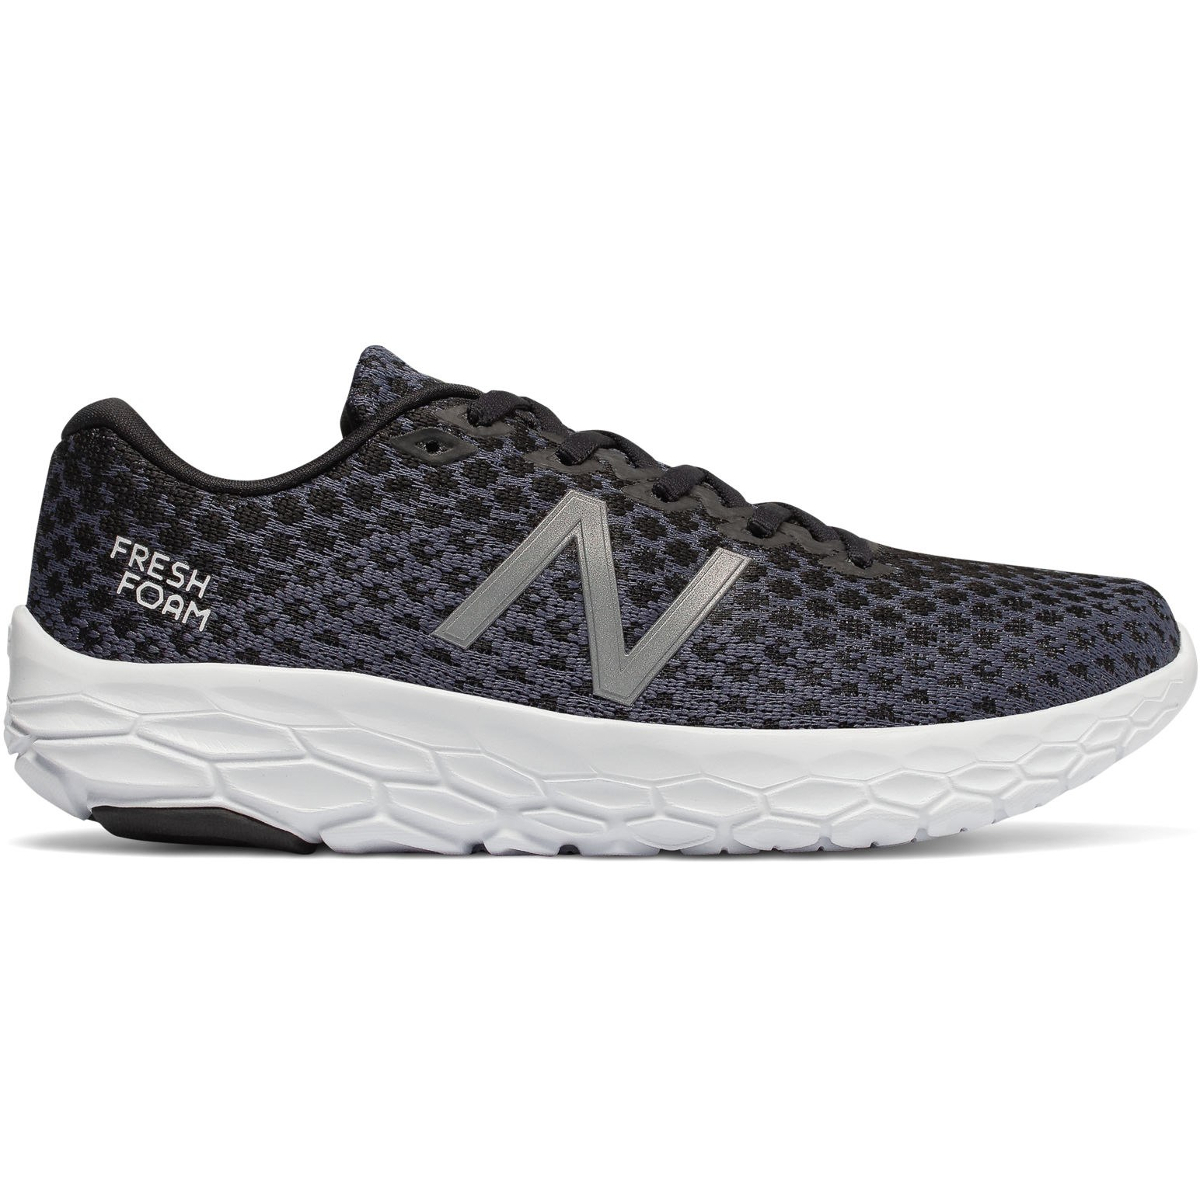 New Balance Women's Fresh Foam Beacon Running Shoes - Black, 8.5